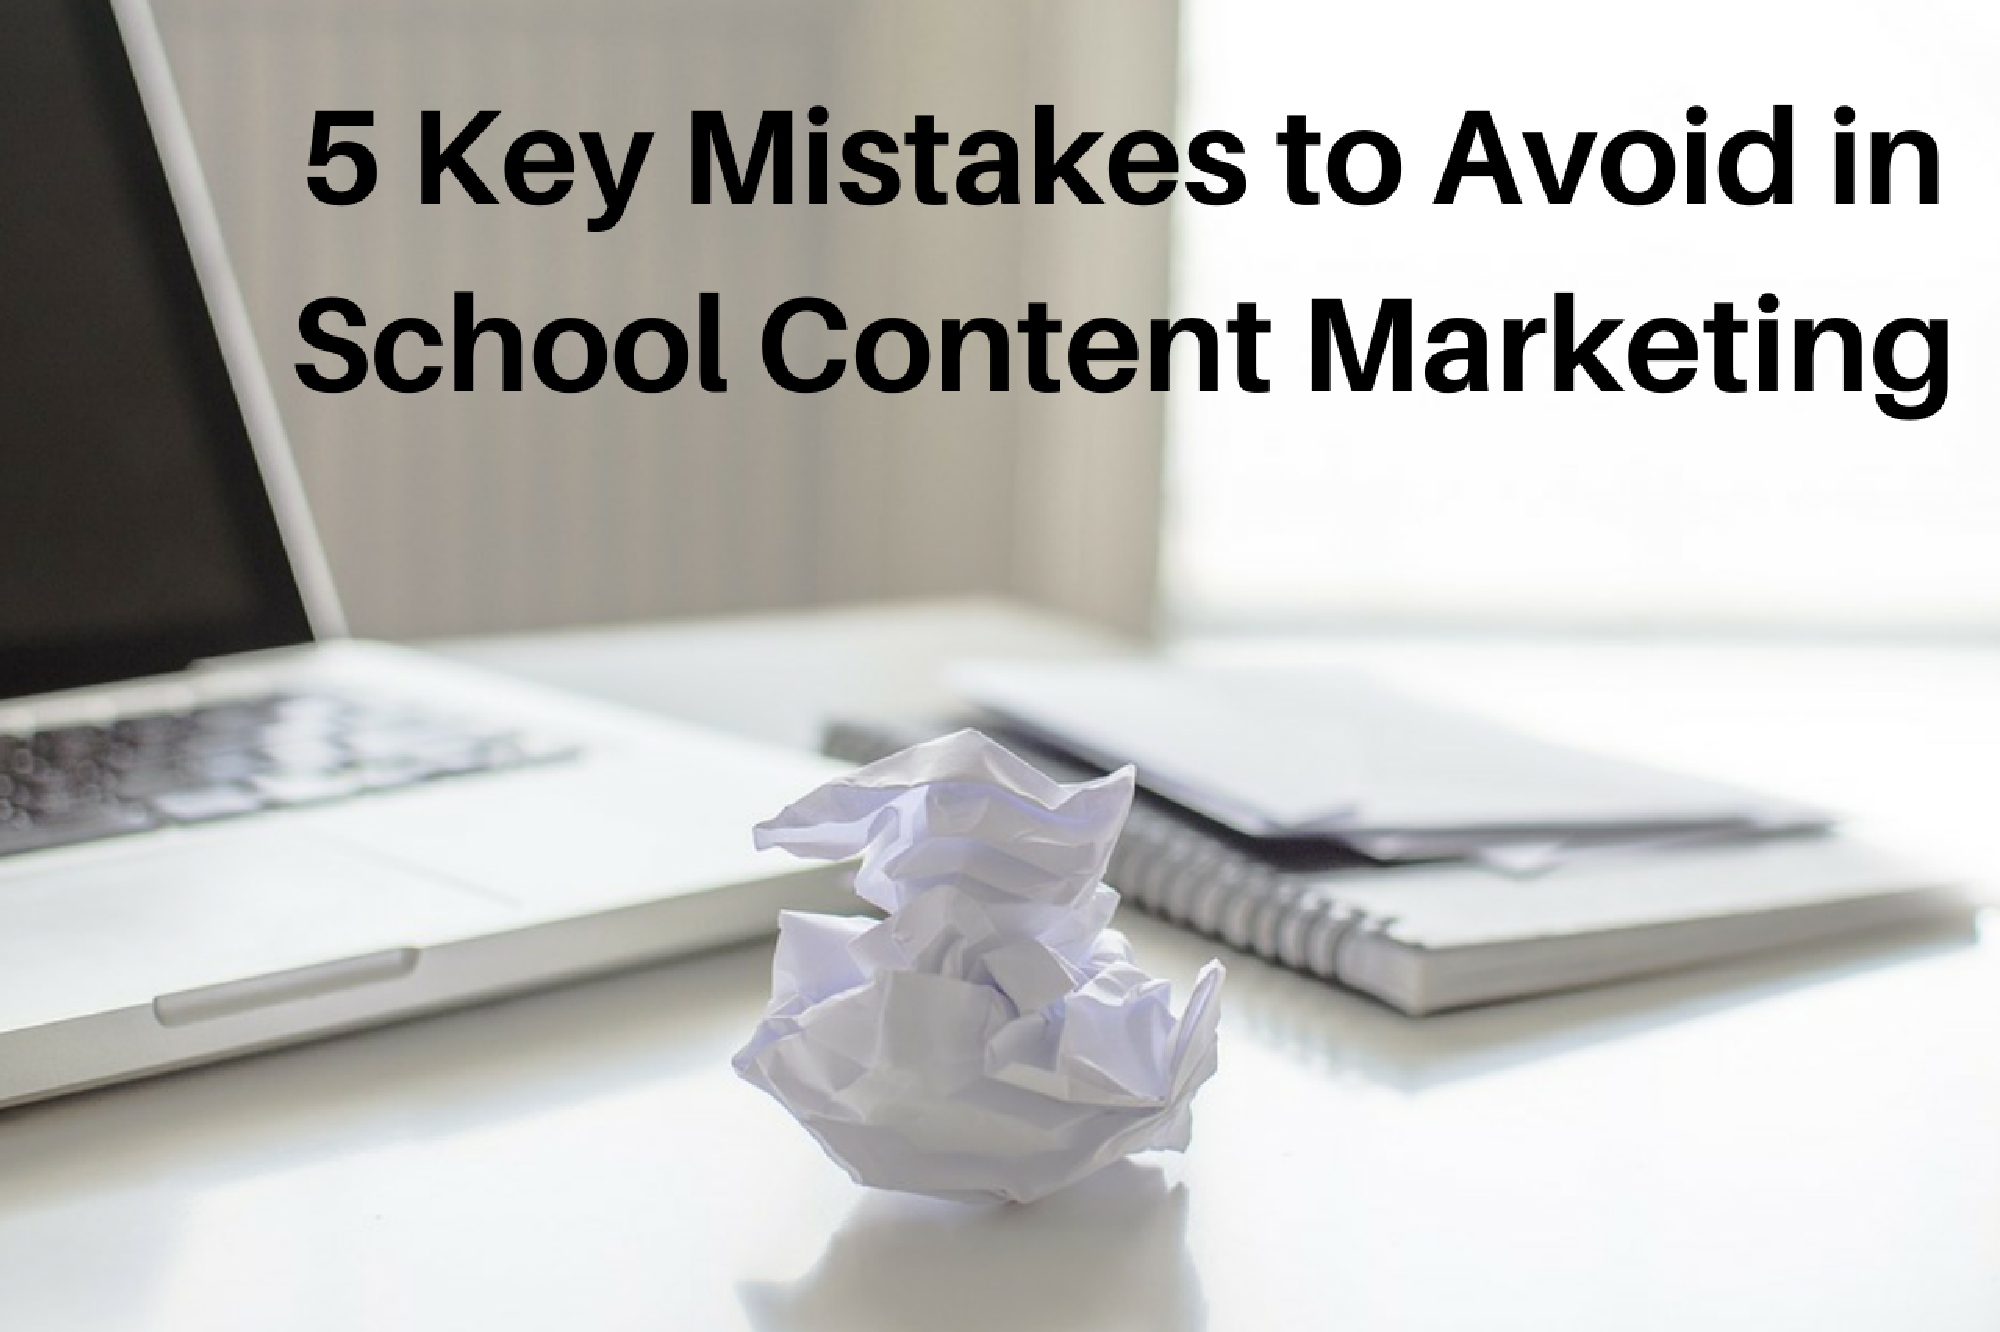 5 Key Mistakes to Avoid in School Content Marketing